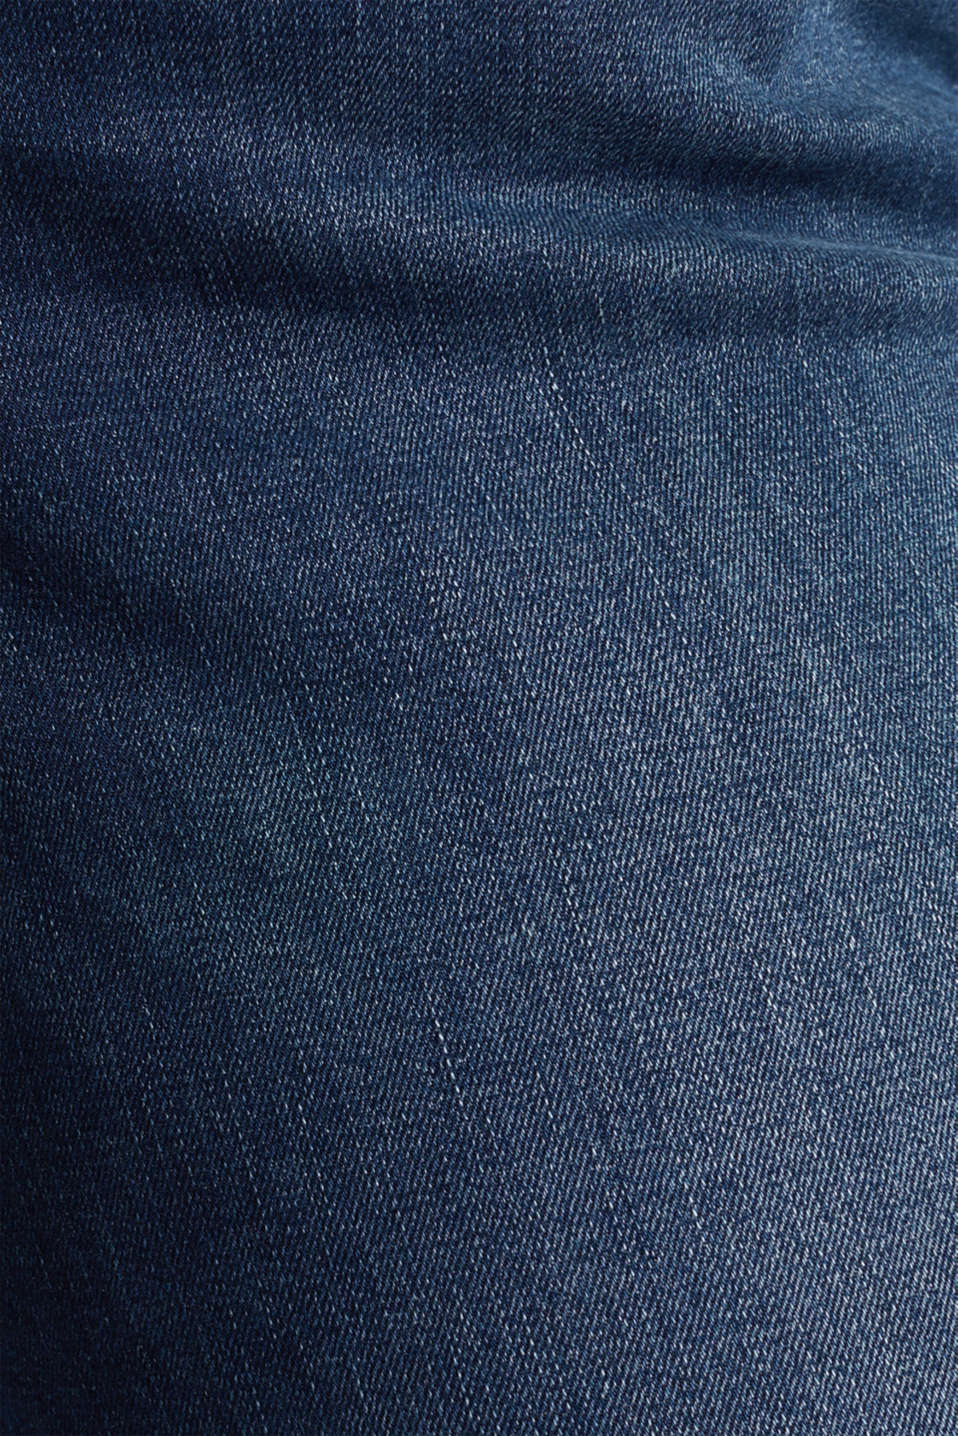 CURVY jeans with a high percentage of stretch, BLUE DARK WASH, detail image number 4